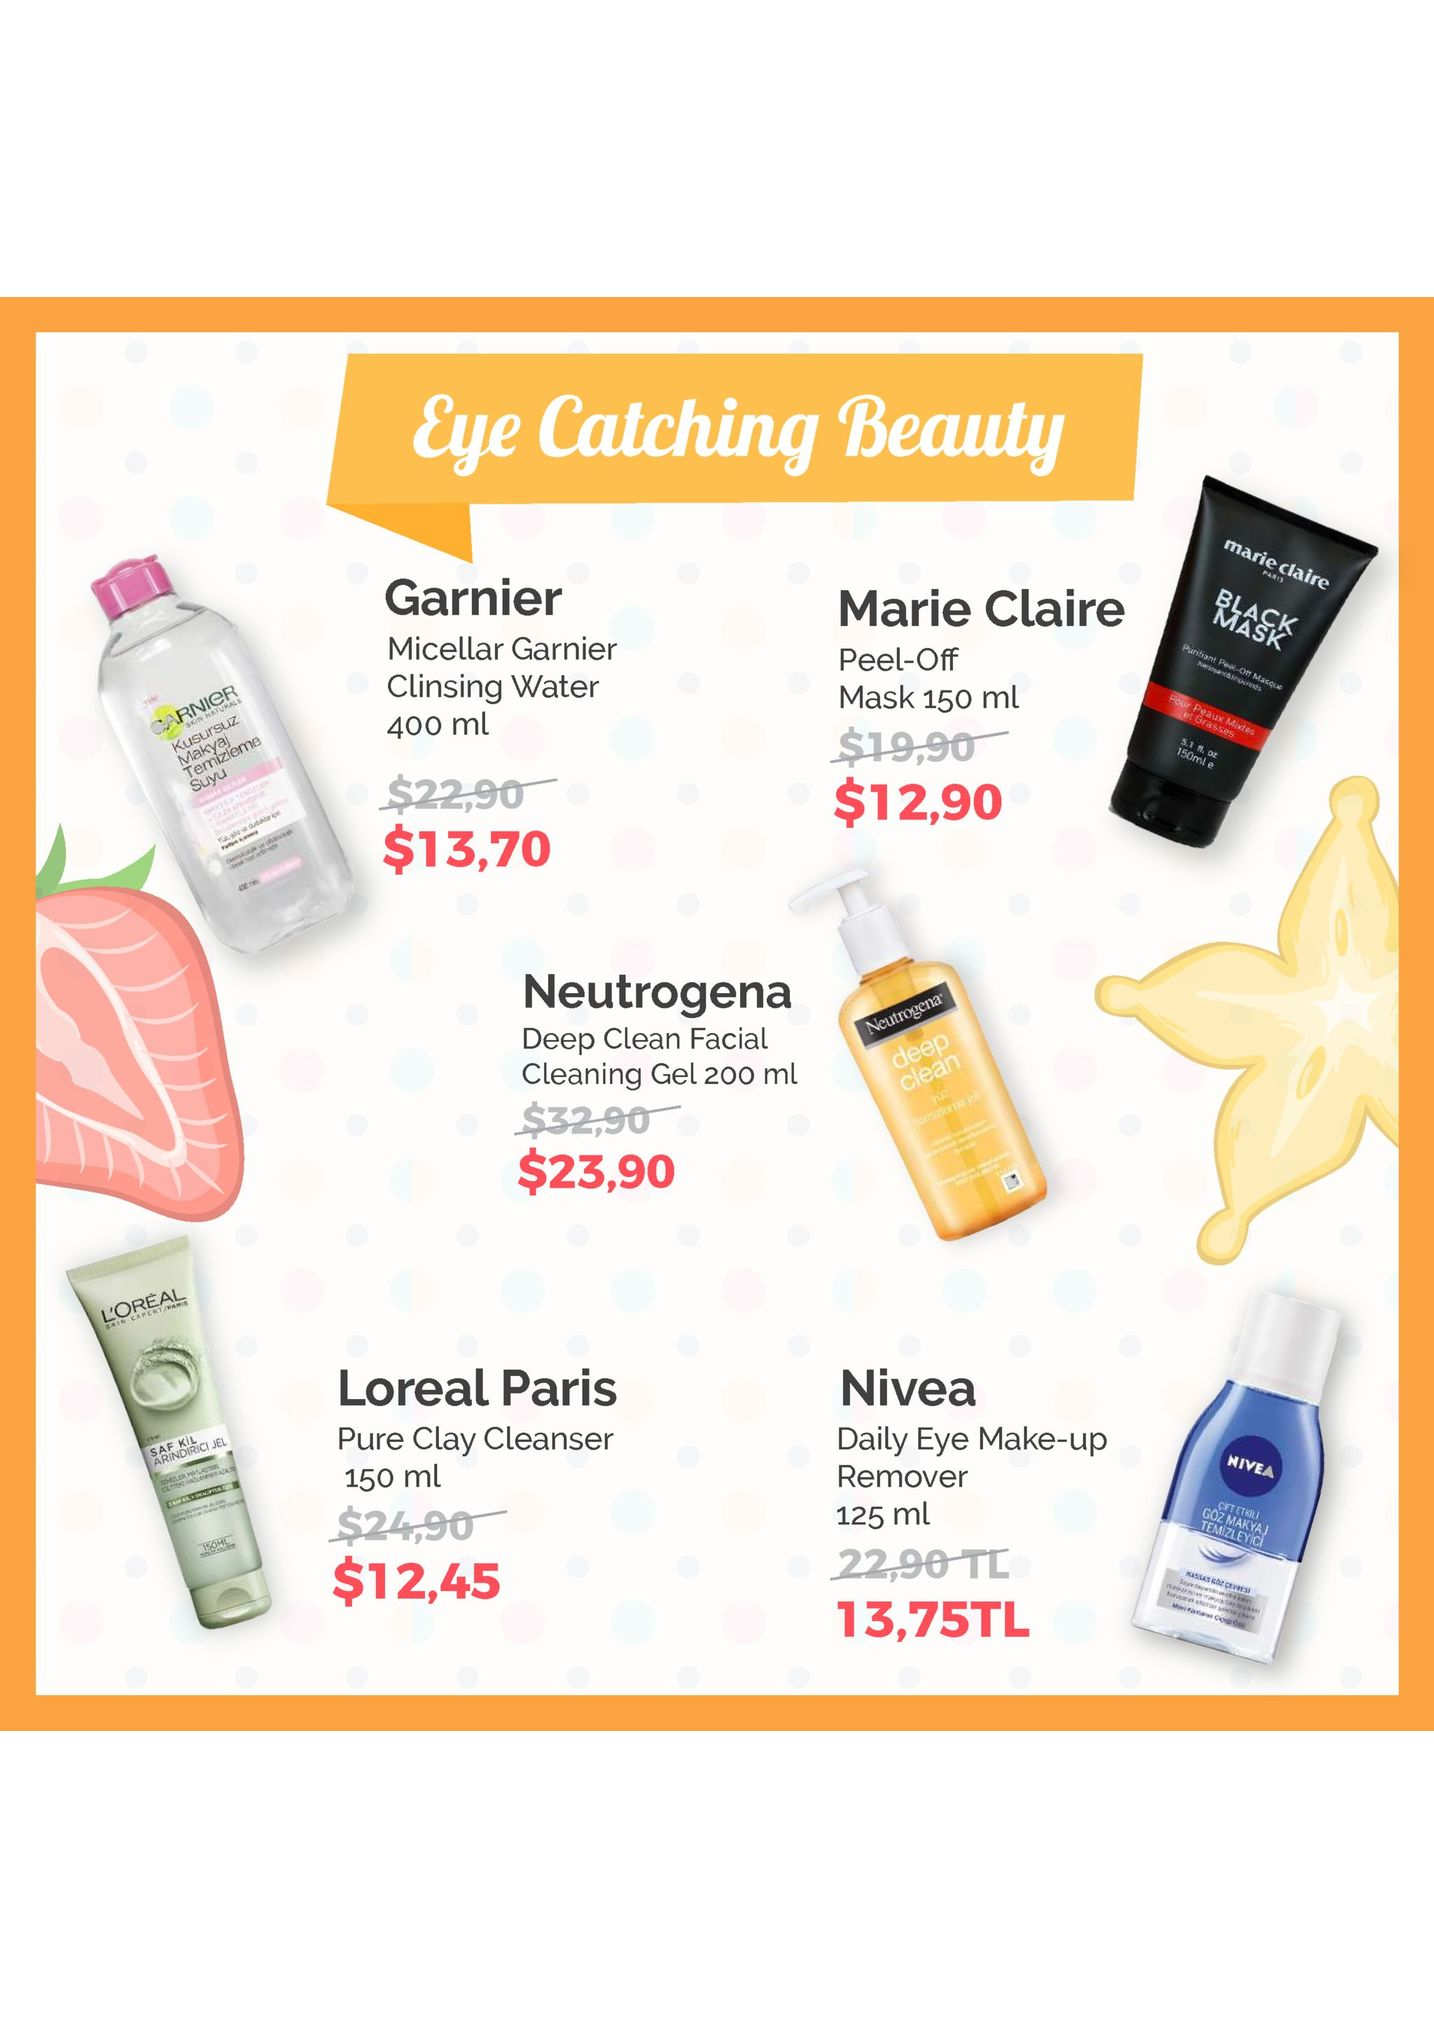 eye catching beauty mar eclaire marie claire peel-off mask 150 ml mask garnier clinsing water 400 ml 150ml $12,90 $13,70 neutrogena deep clean facial cleaning gel 200 ml s3290 - $23,90 loreal paris pure clay cleanser 150 ml nivea daily eye make-up remover 125 ml nivea cftethii goz makya temizleyi cevres $12,45 13,75tl